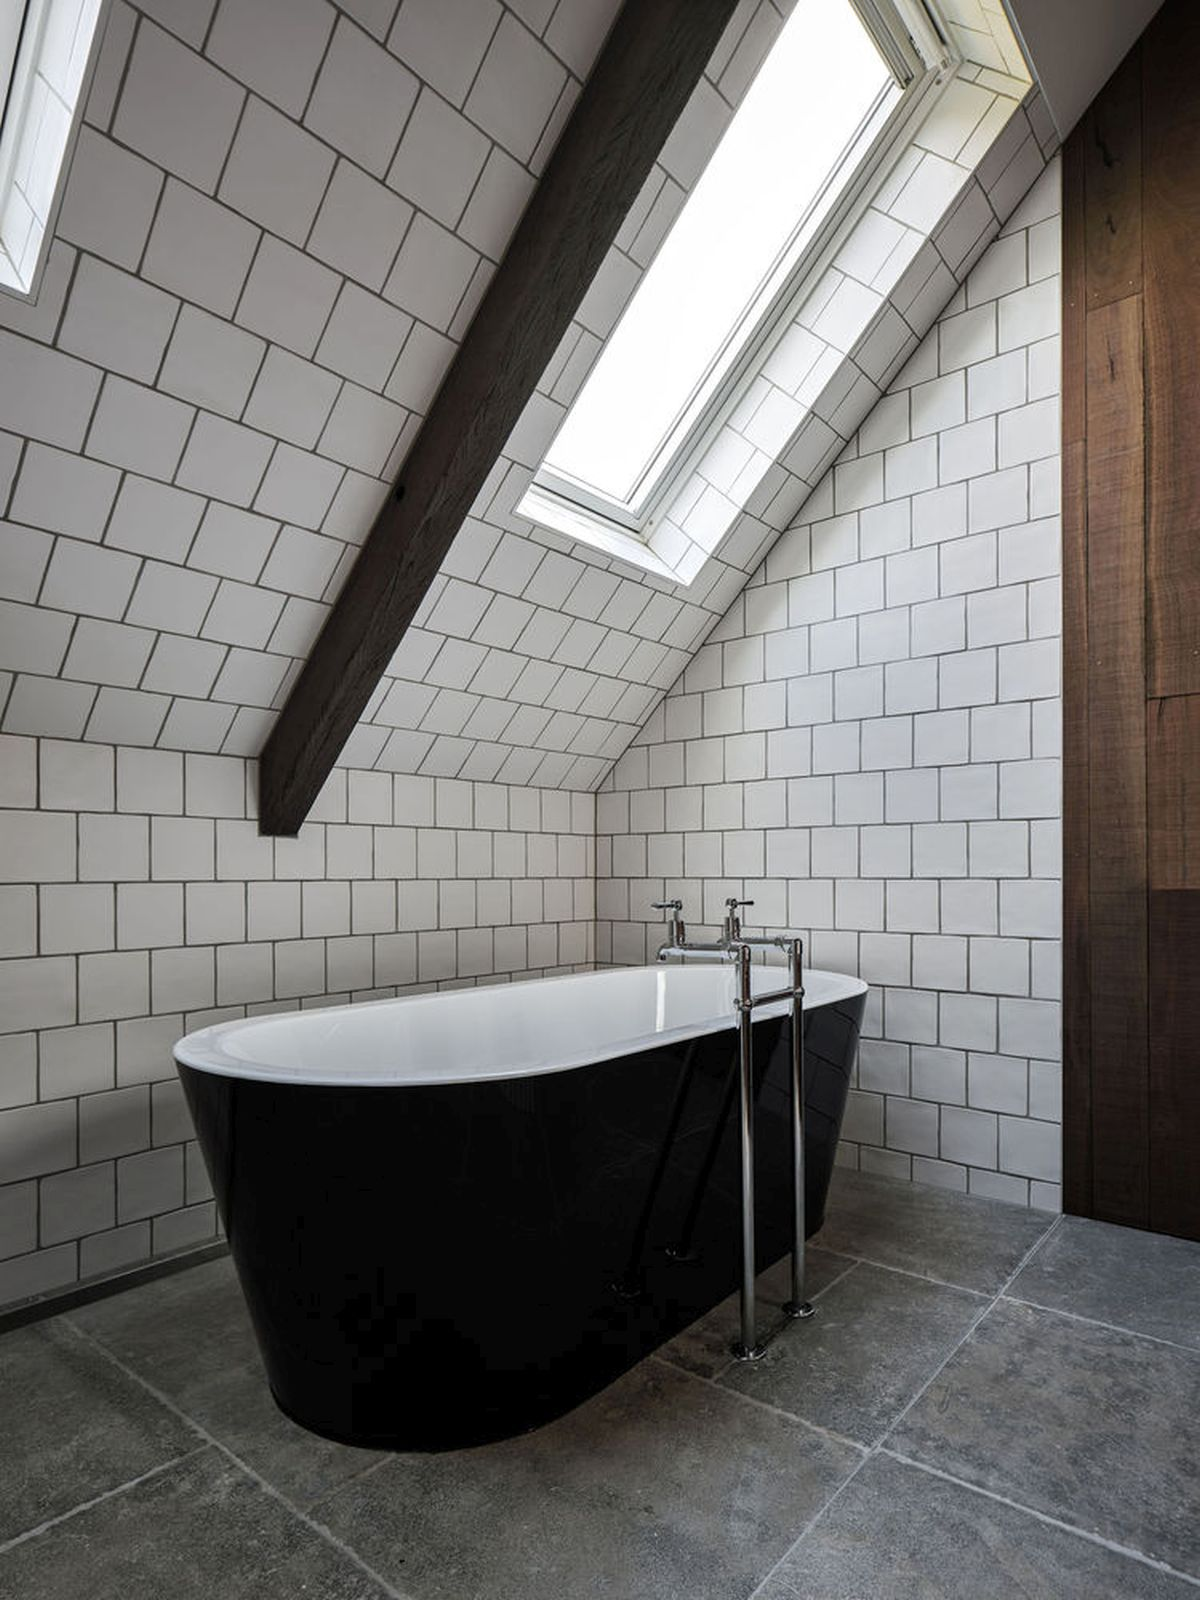 Skylights were installed for the upstairs rooms, including the bathrooms